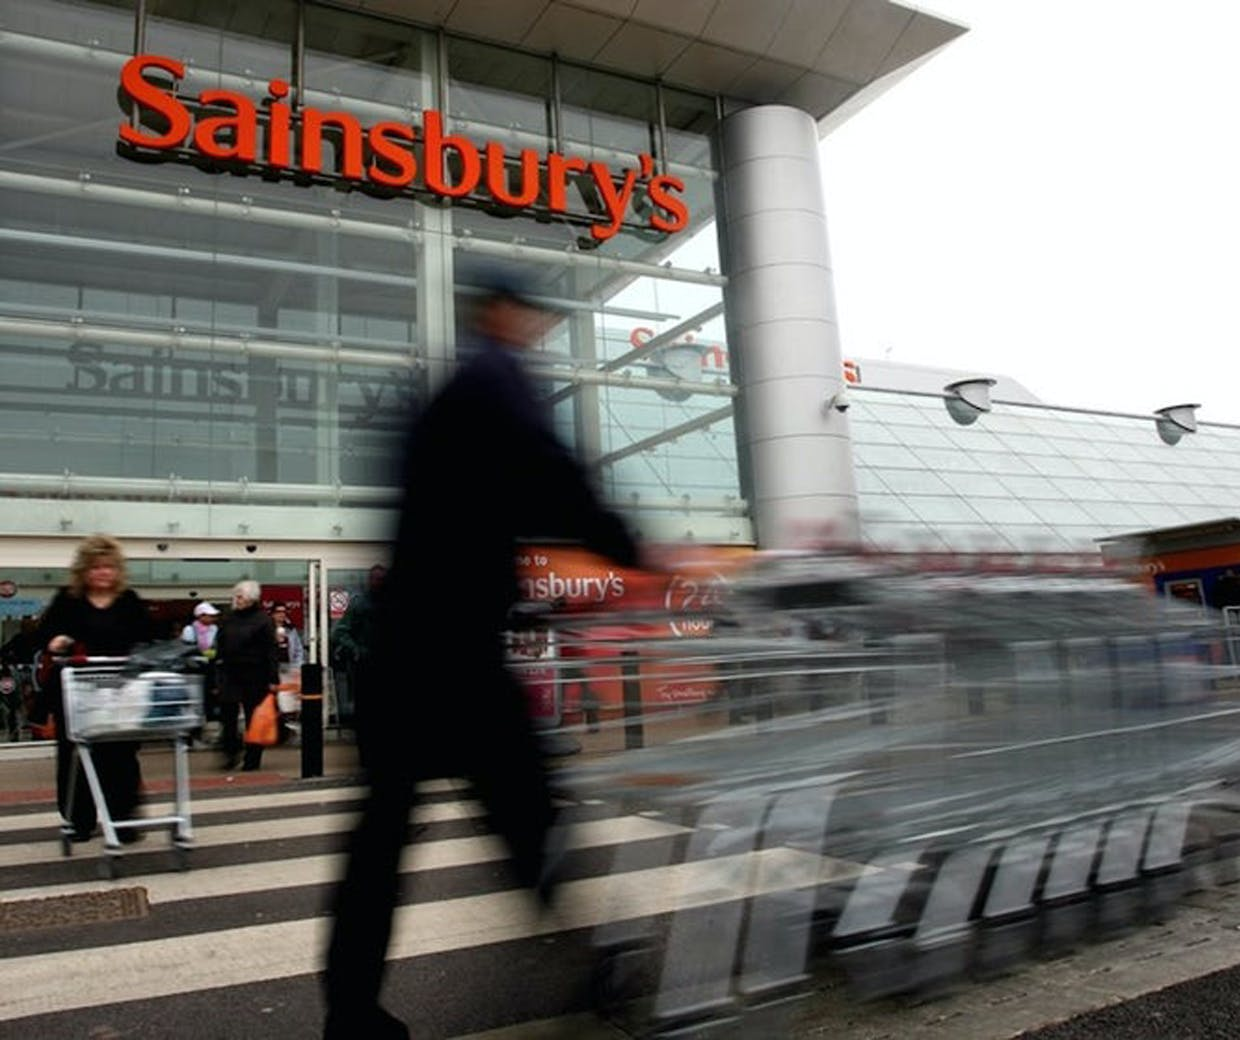 an analysis of the advertising in sainsbury store The research was conducted using the 4 ps framework and a pestel analysis  a new sainsbury's store to be opened  in-depth business research: sainsbury's.